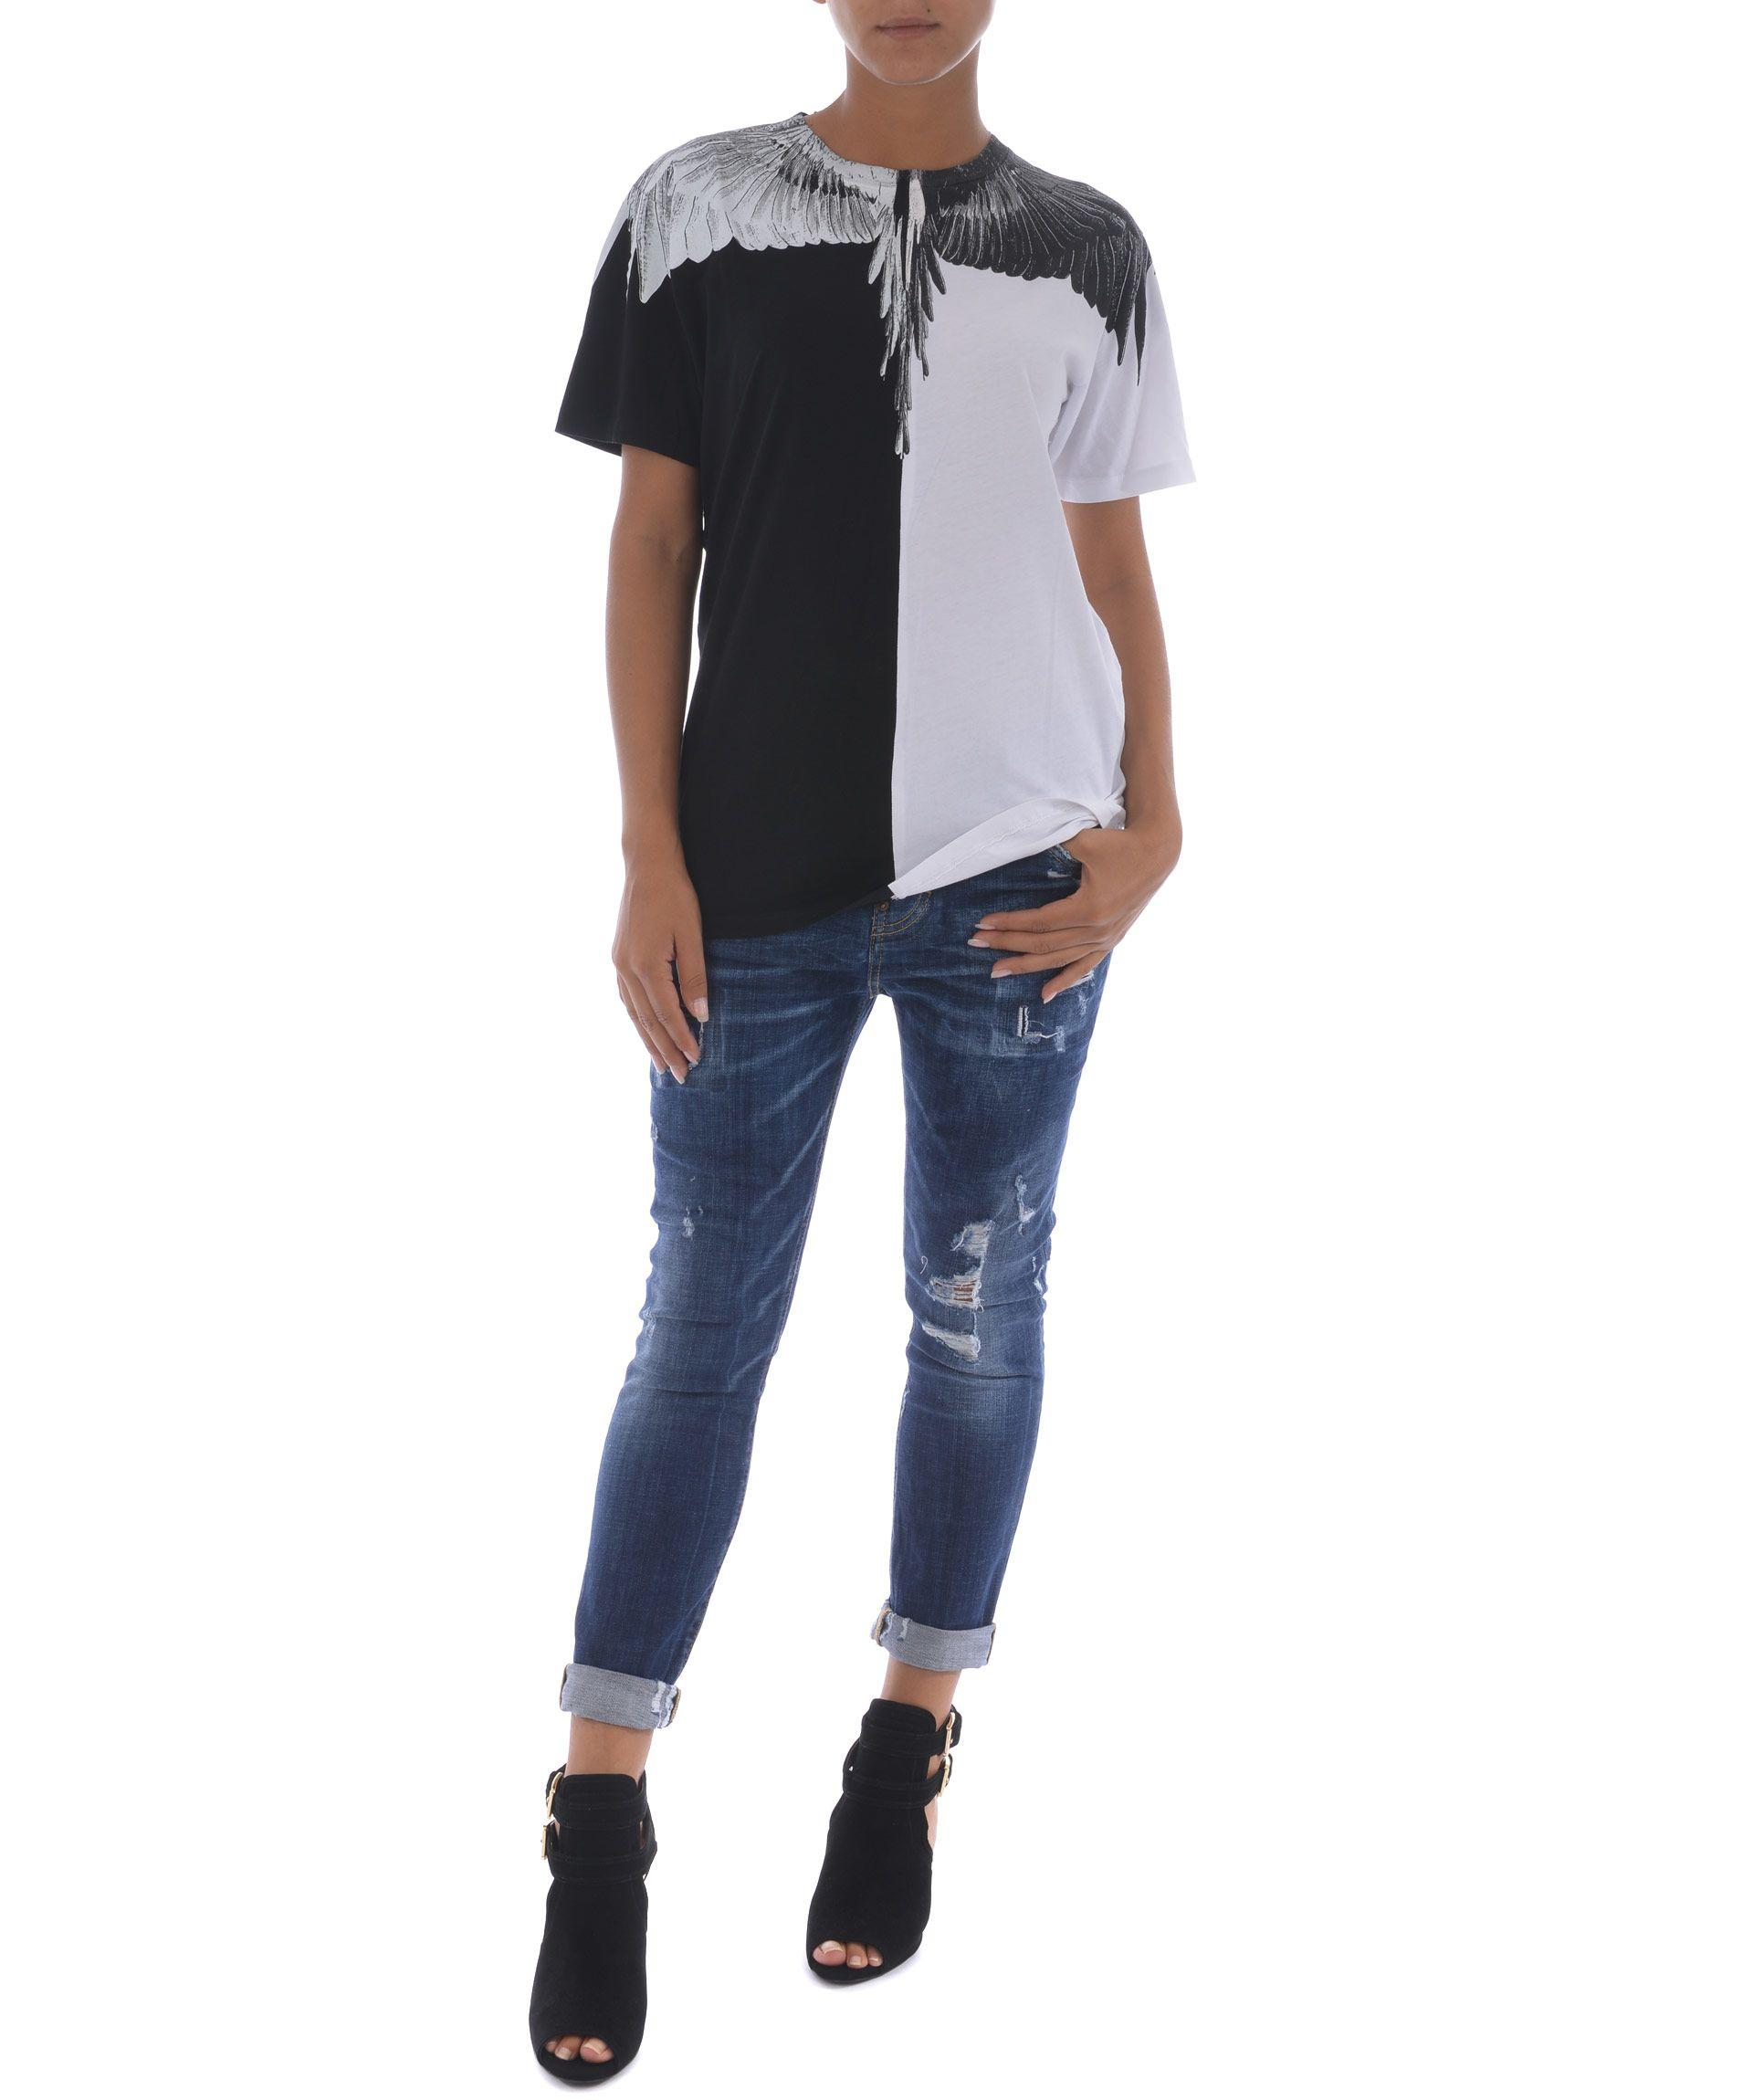 Marcelo Burlon County Of Milan White Cotton T-Shirt In Nero-Bianco